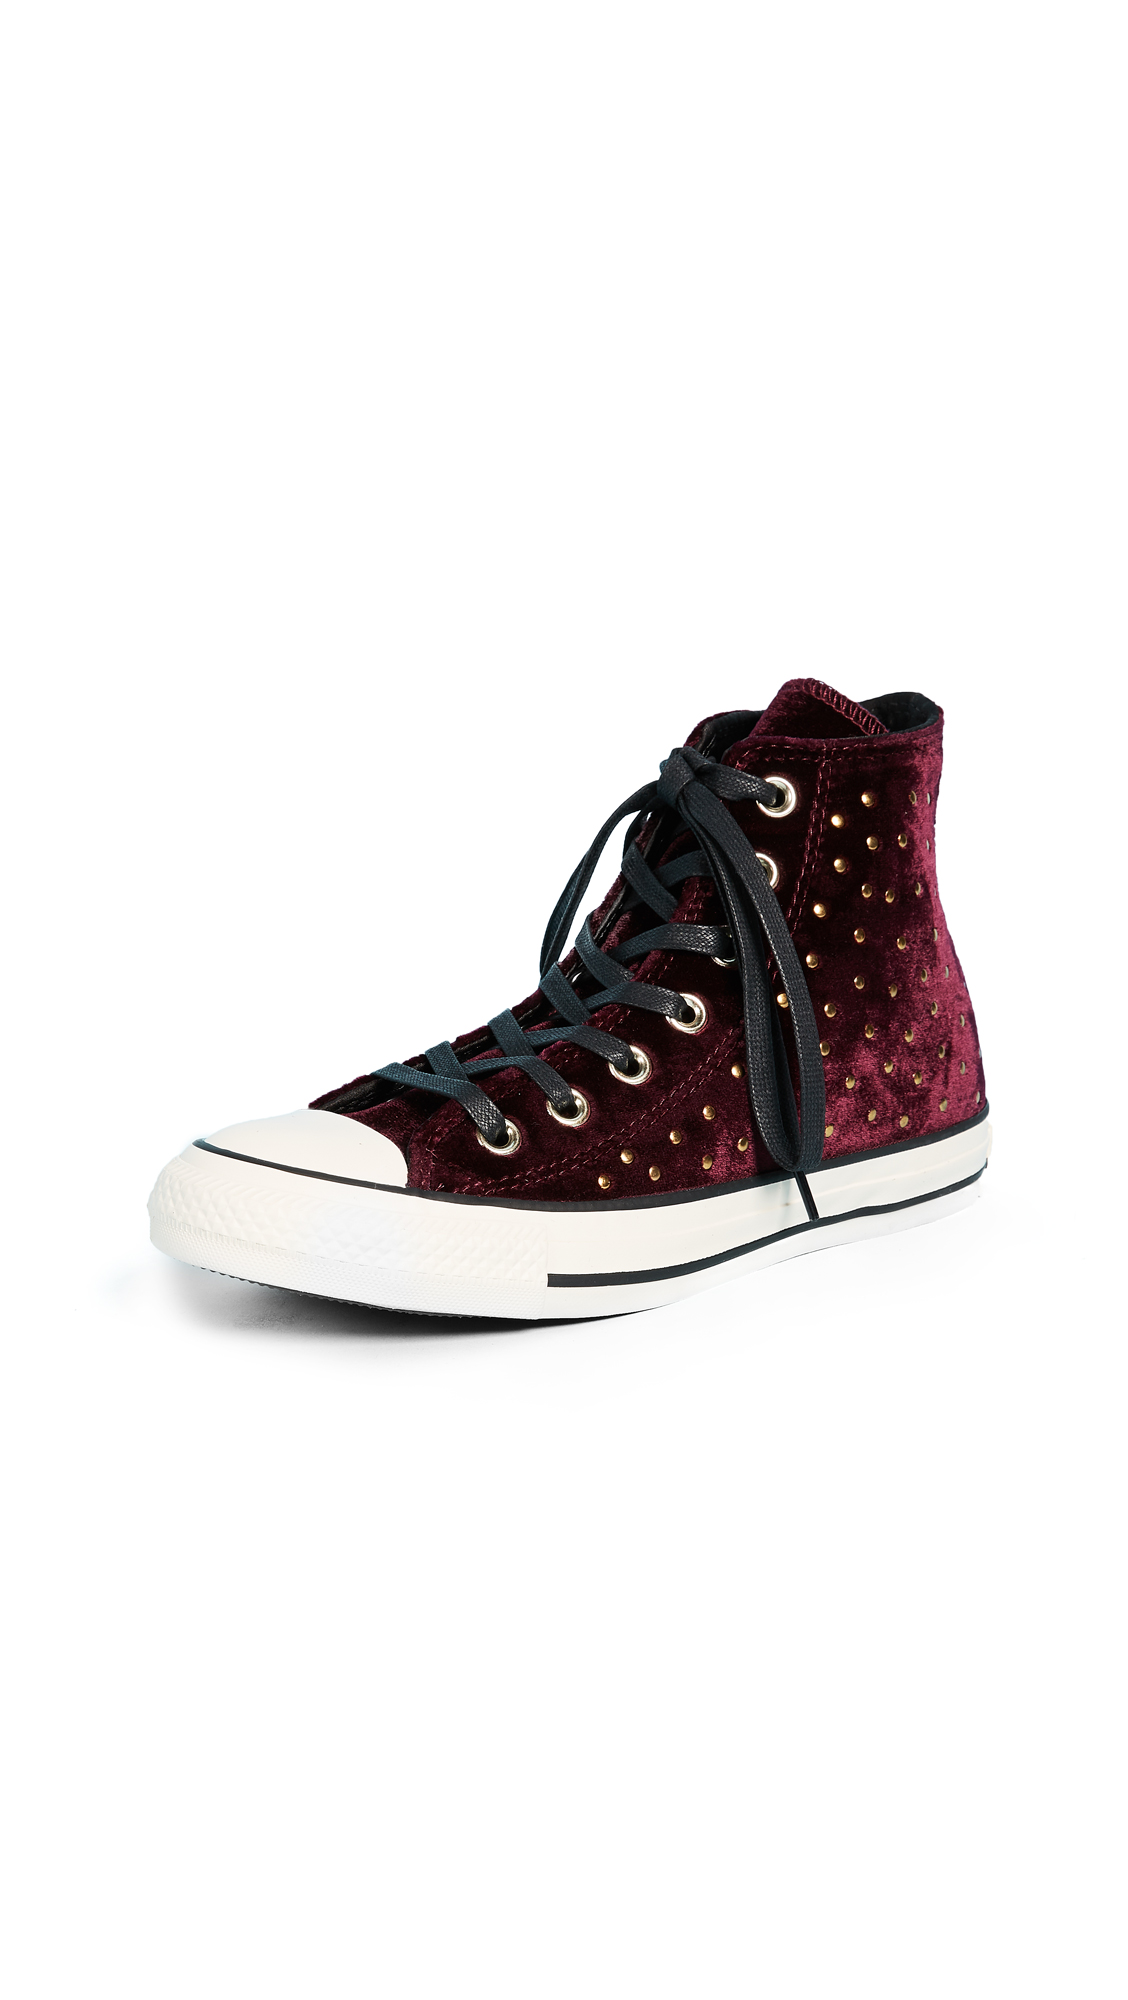 Converse Chuck Taylor All Star High Top Sneakers - Dark Sangria/Black/Turtledove